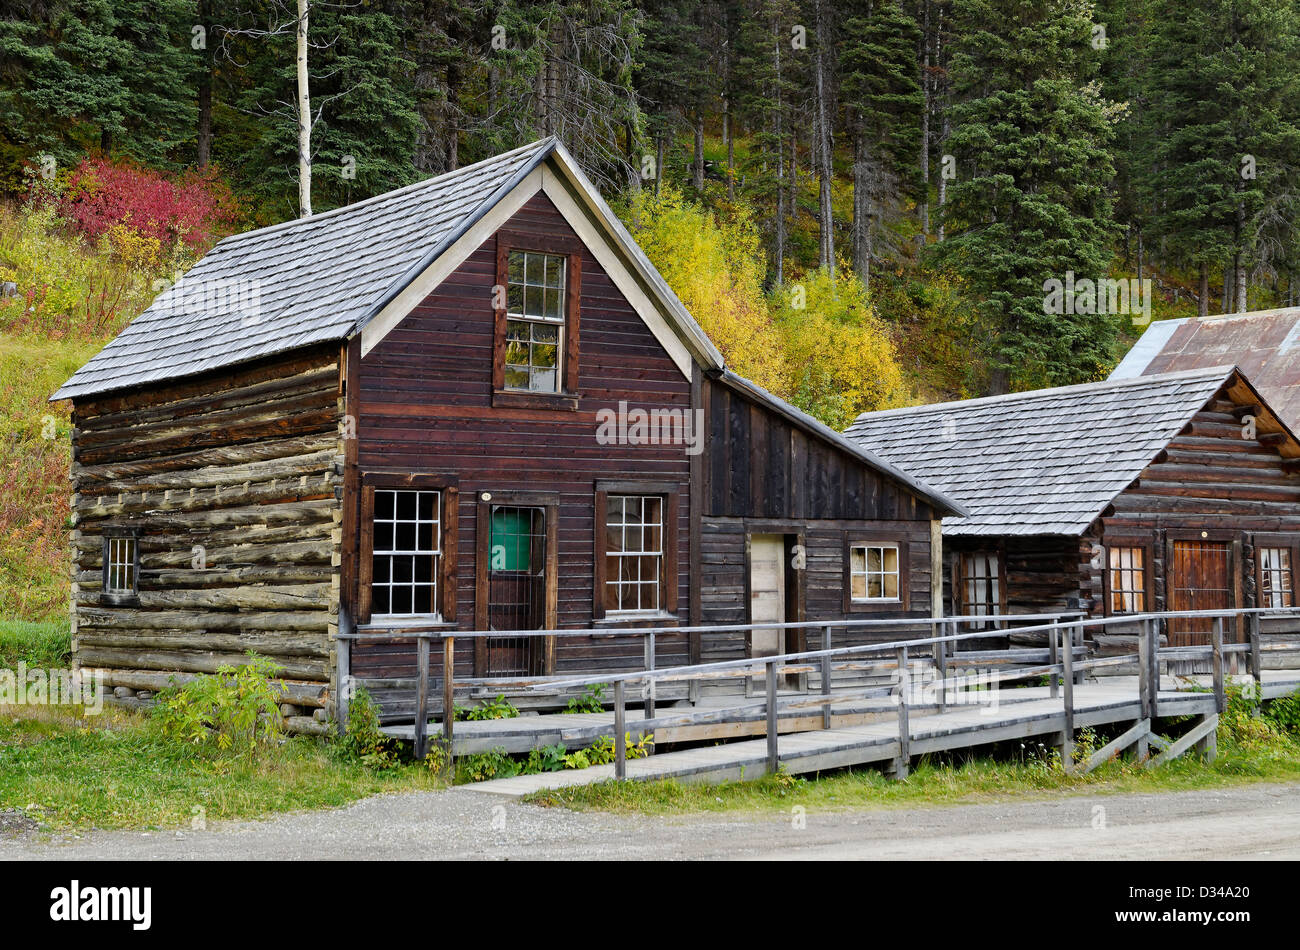 Barkerville Bc Stock Photos & Barkerville Bc Stock Images